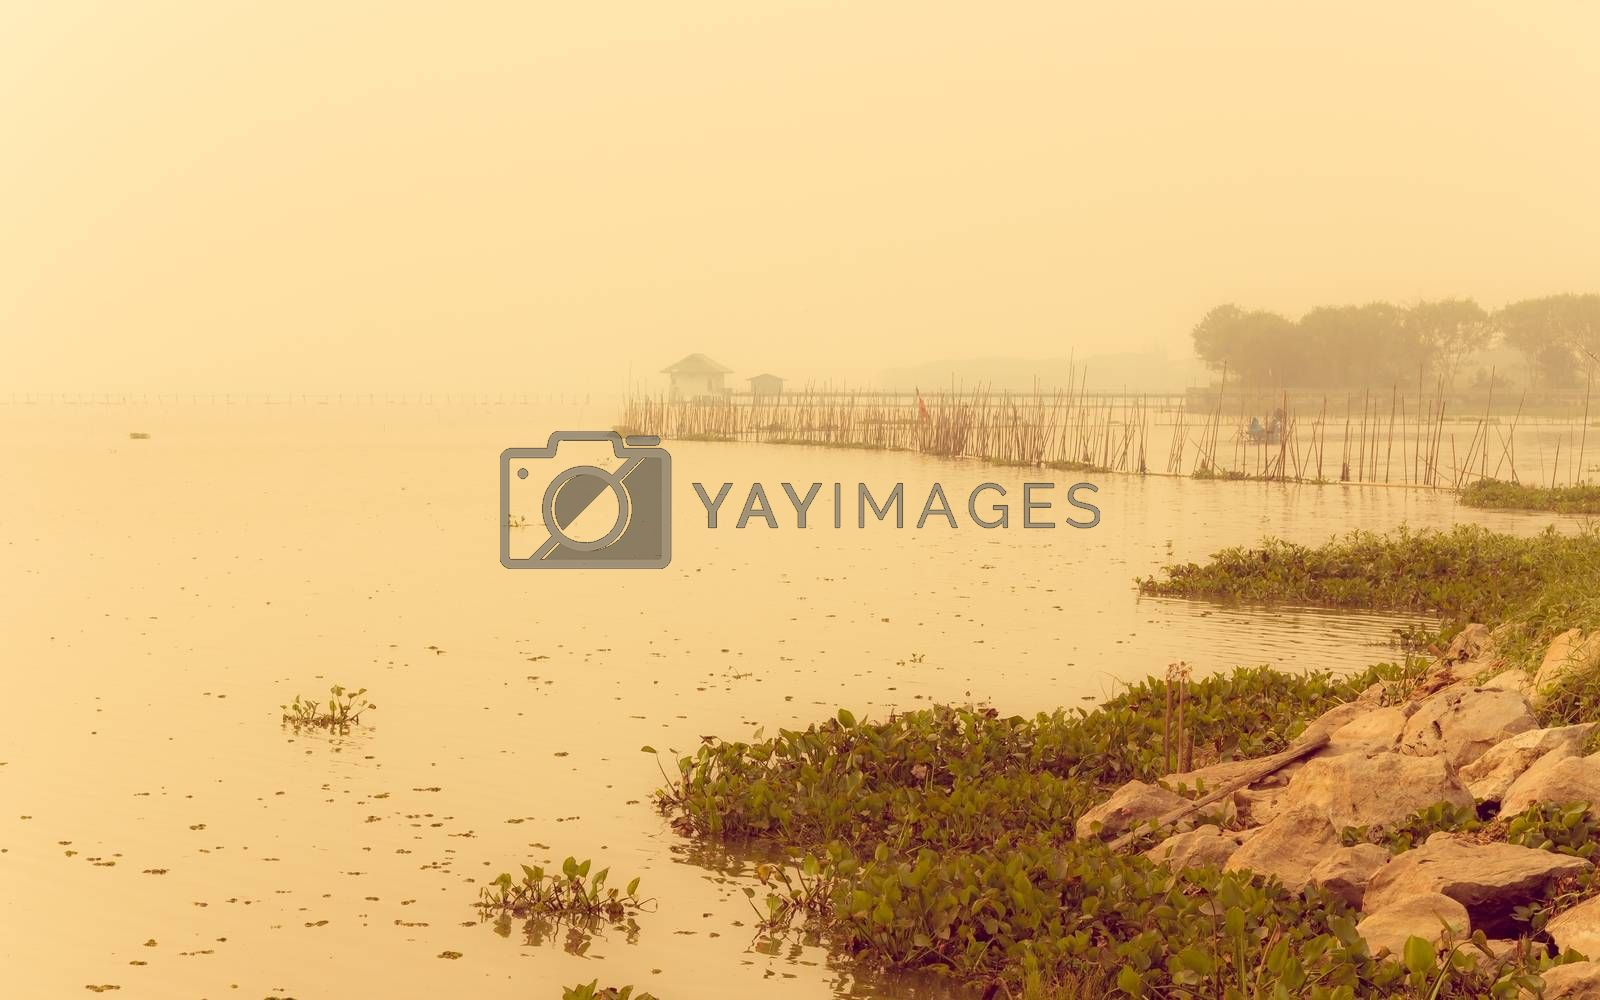 landscape with lake and fog in the morning, vintage style